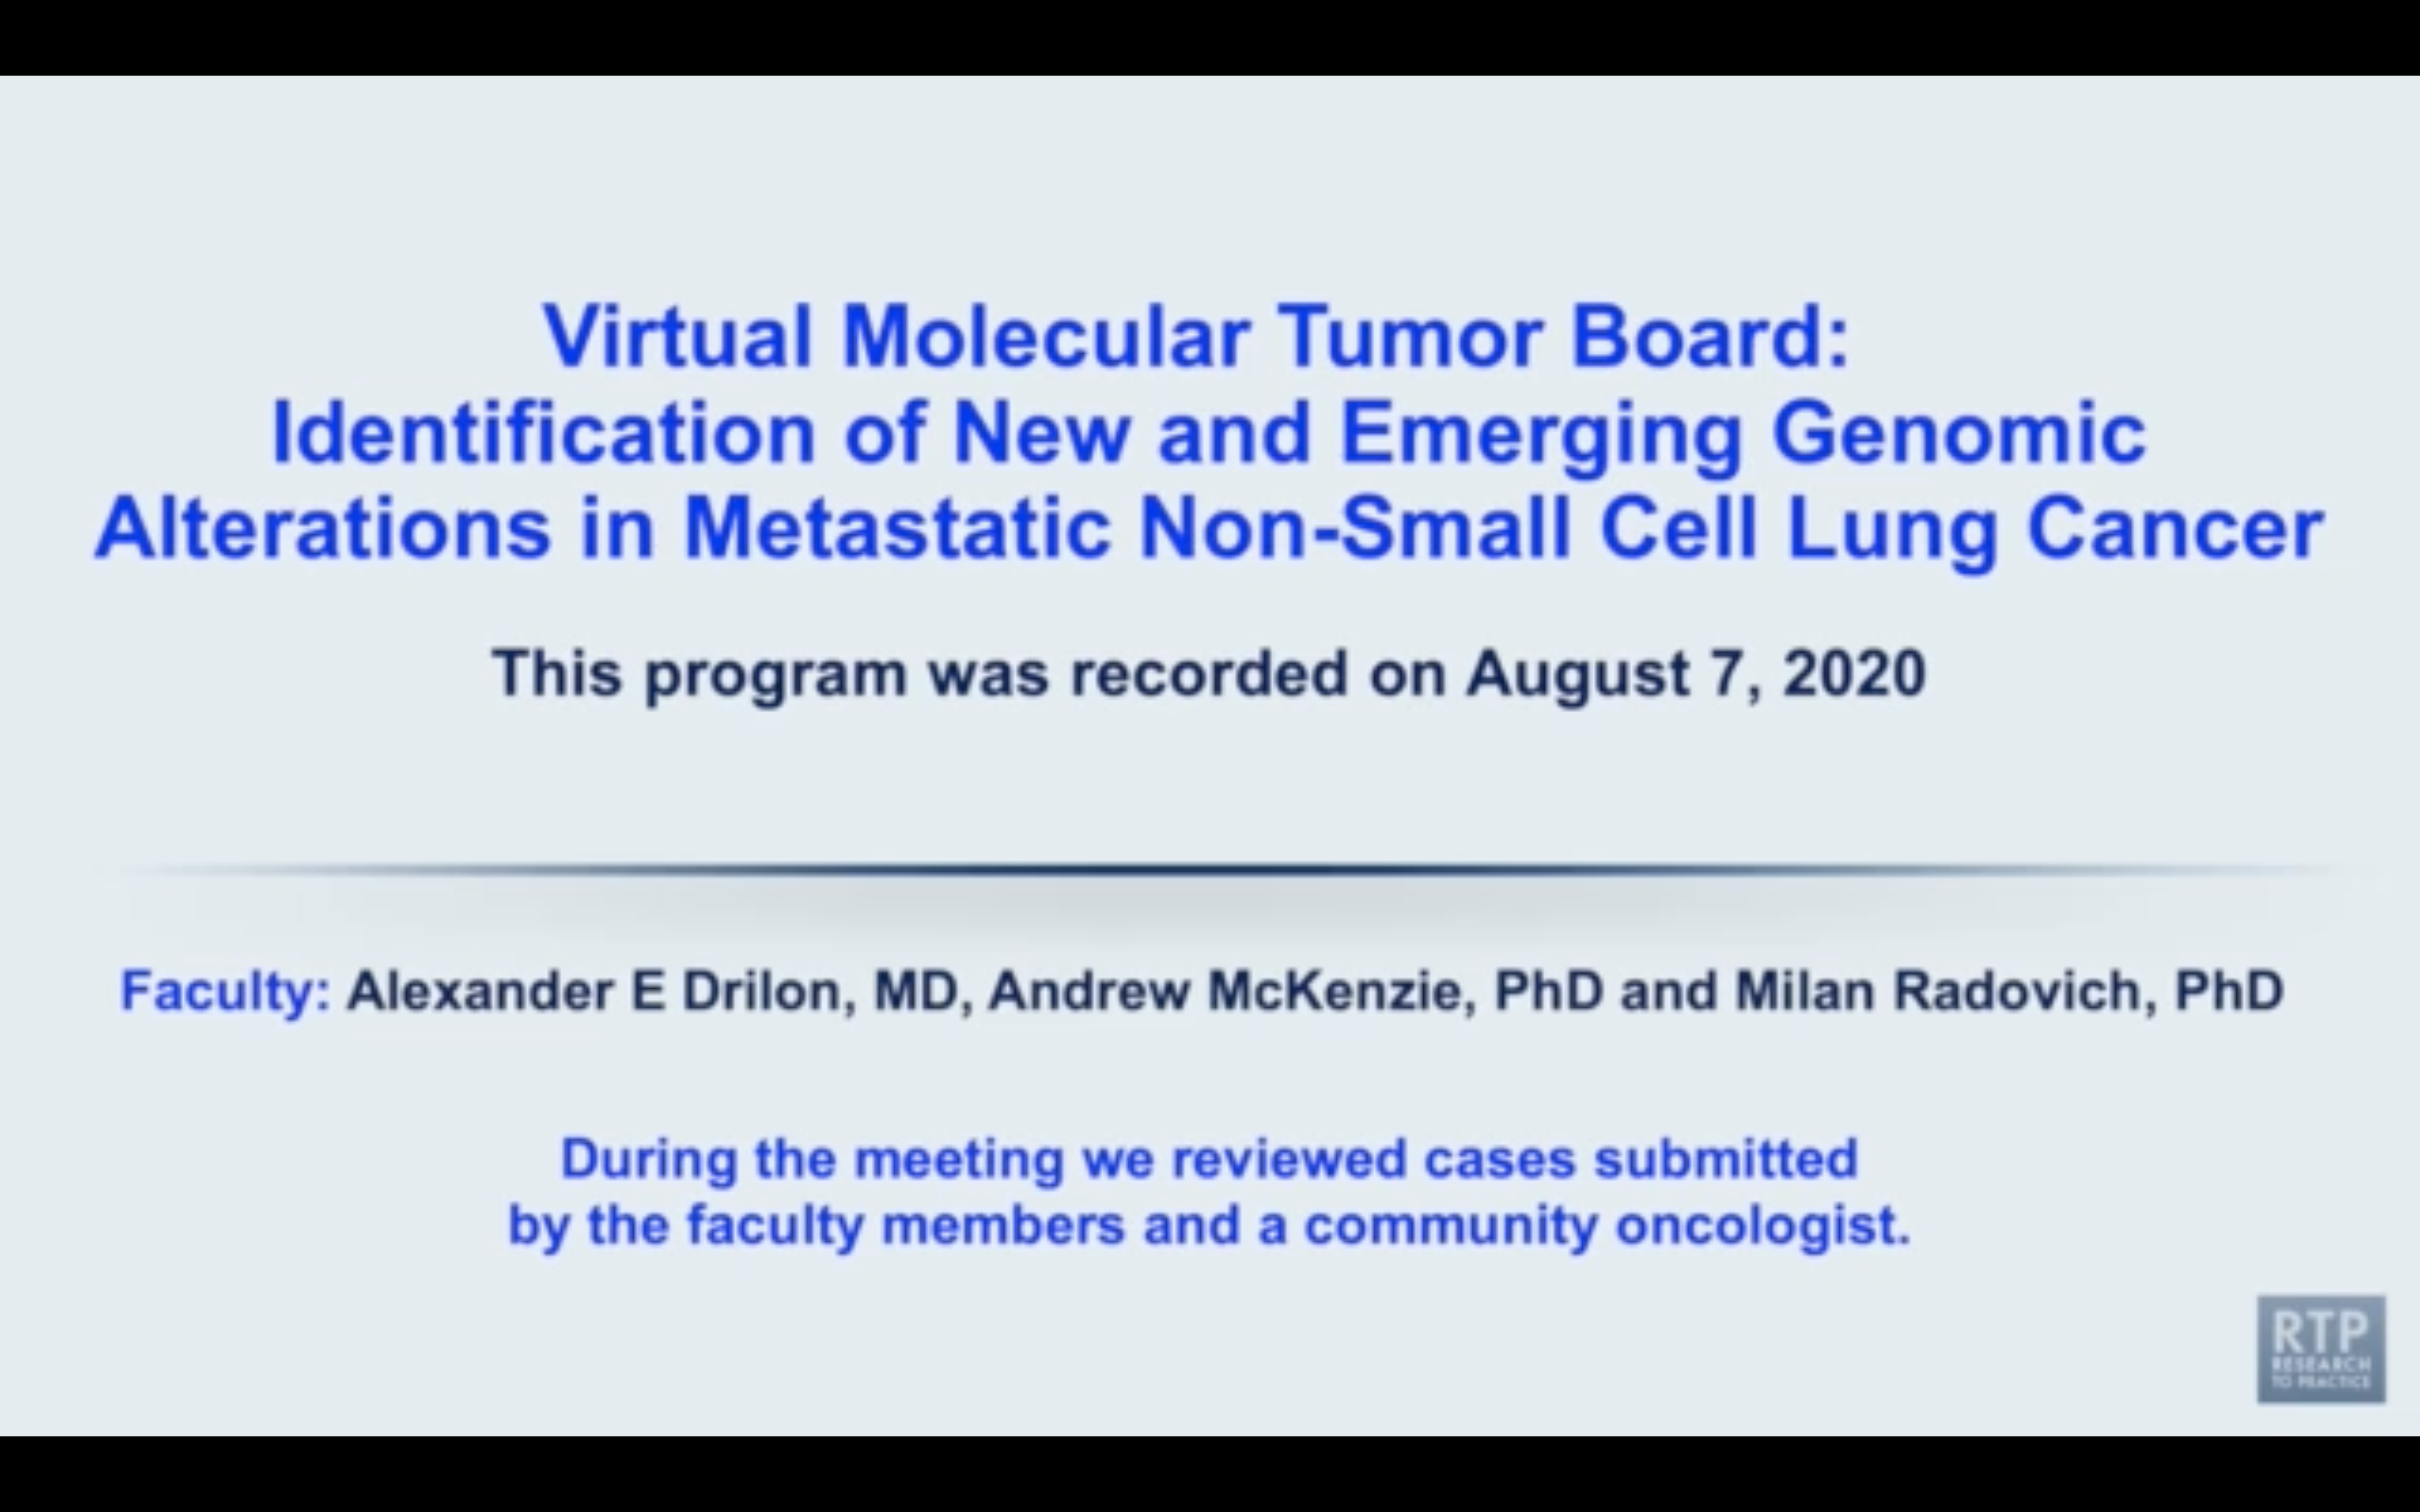 Artwork for Multitumor | Virtual Molecular Tumor Board: Identification of New and Emerging Genomic Alterations in Metastatic Non-Small Cell Lung Cancer